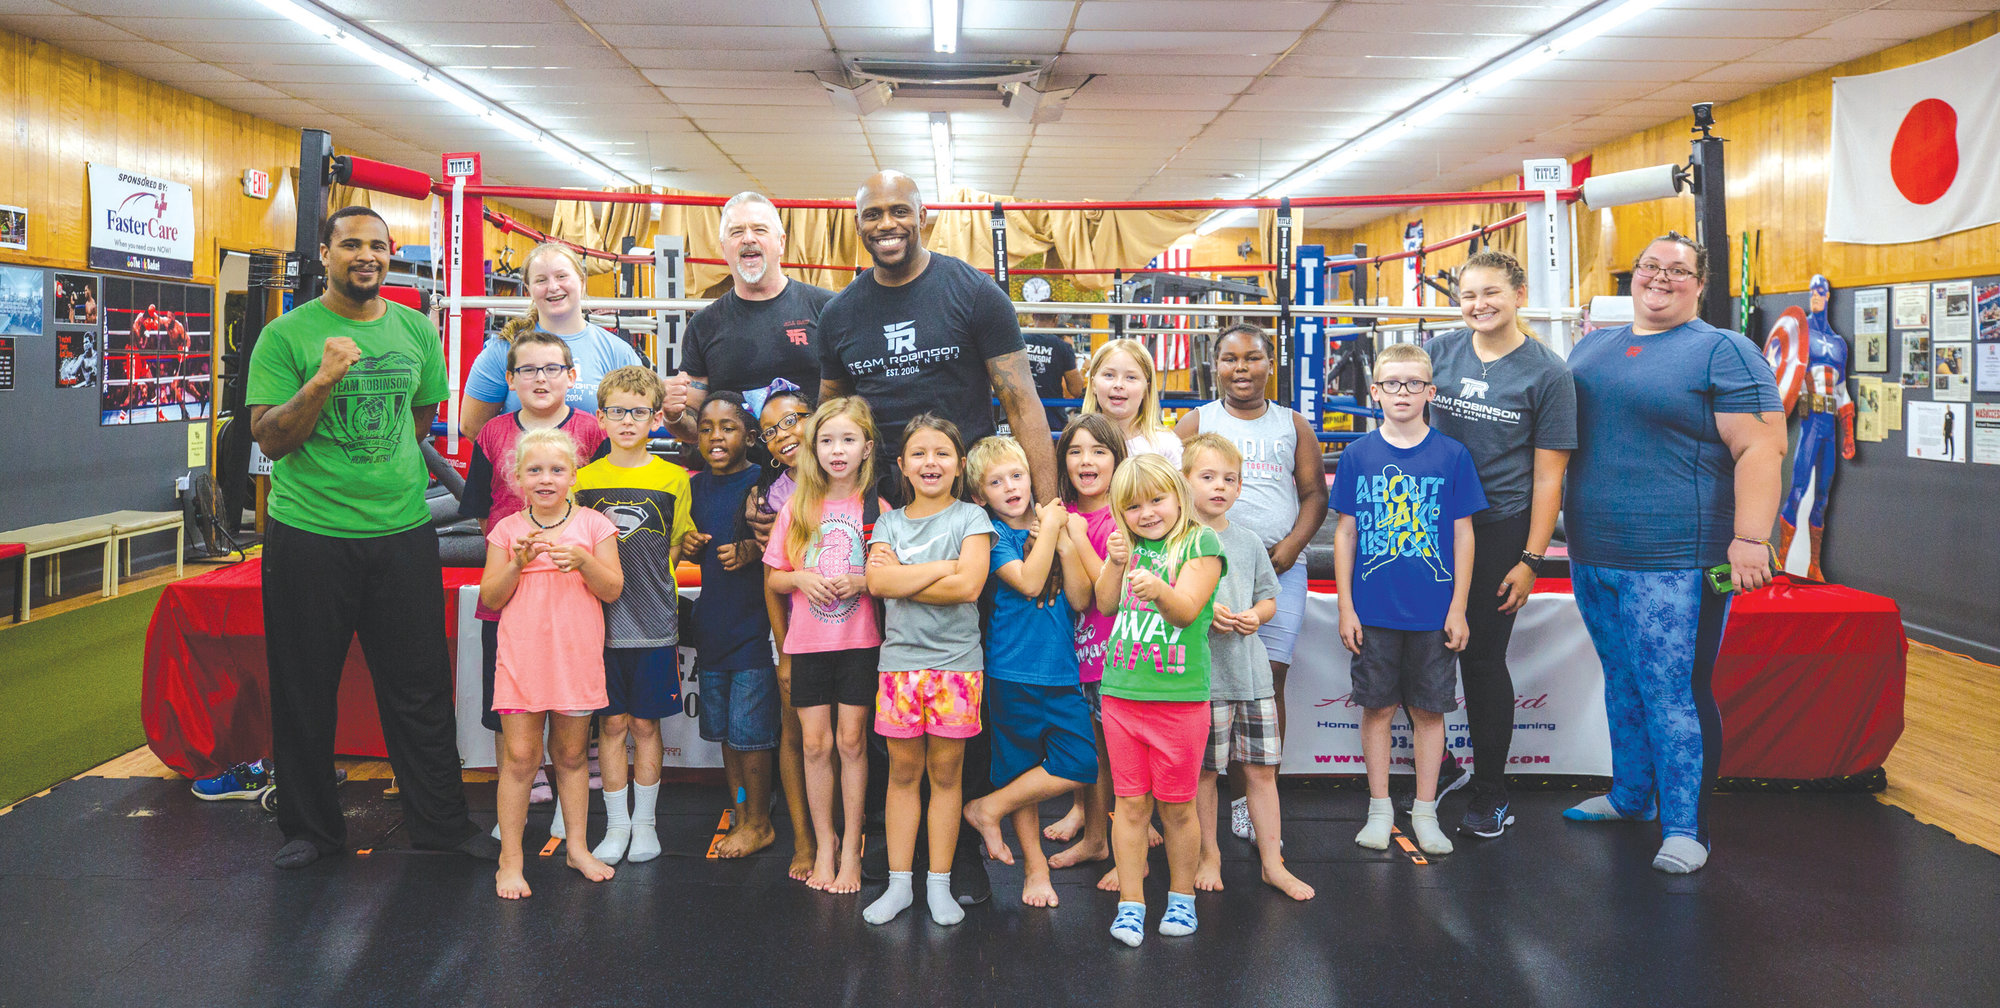 Jerome Robinson of Team Robinson MMA and students Clubhouse Learning Center on Monday morning. The group makes a trip to the gym every Monday during the summer, where Jerome and his team teach them basic self defense skills and work outs.